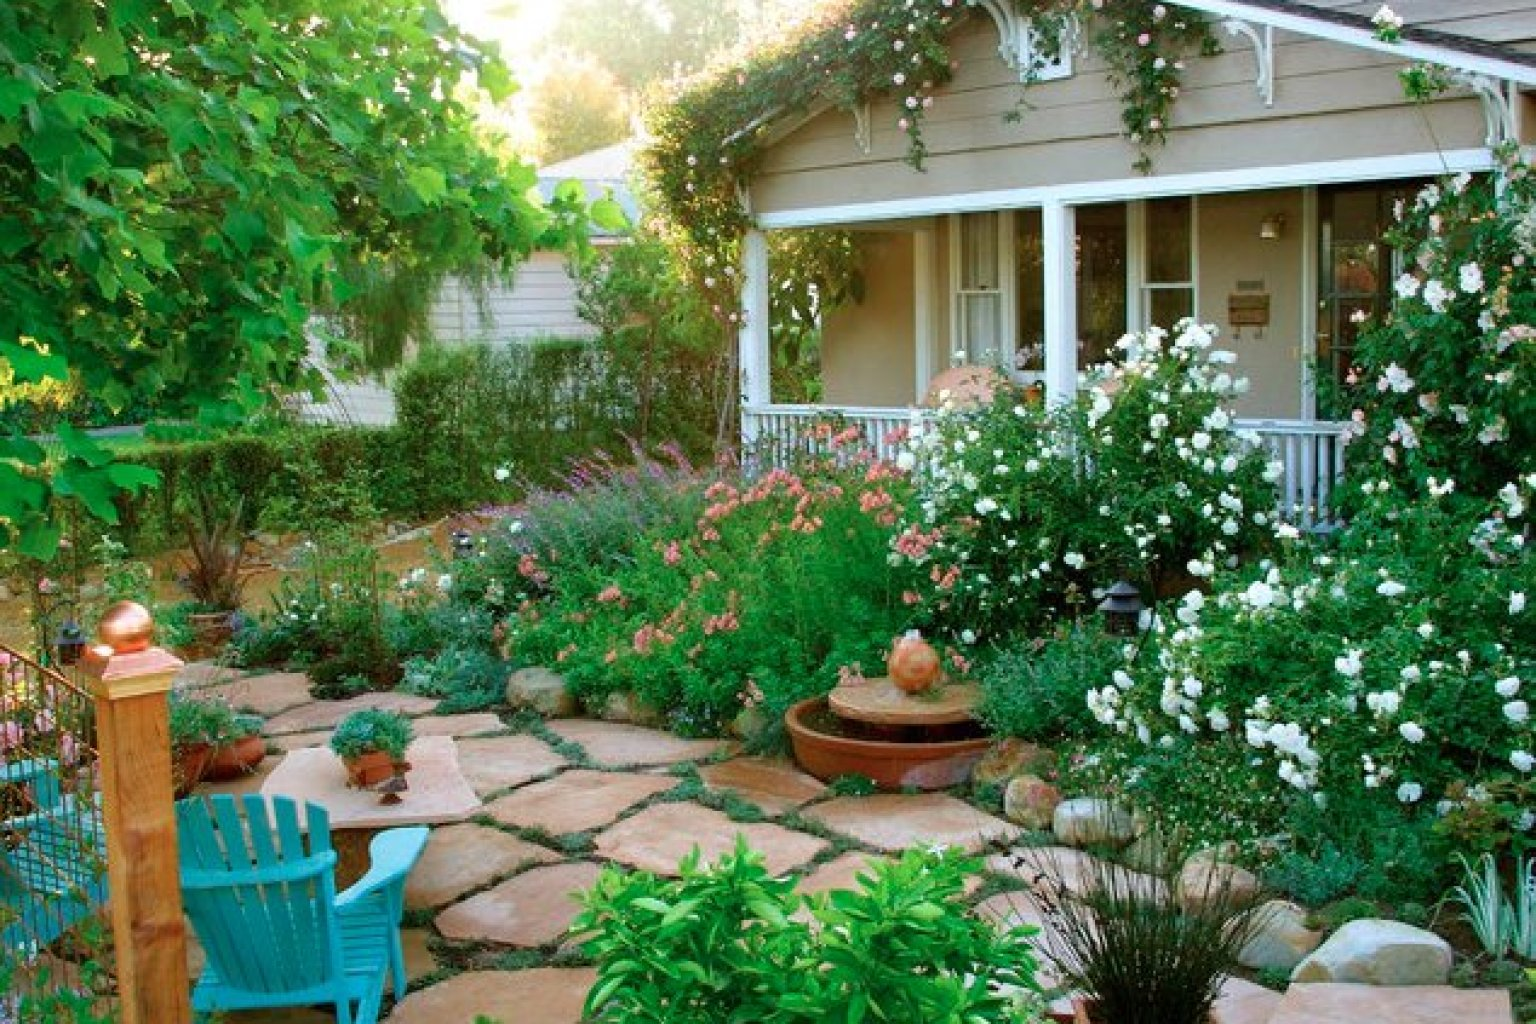 10 Cottage Gardens That Are Just Too Charming For Words ... on Cottage Yard Ideas id=99419